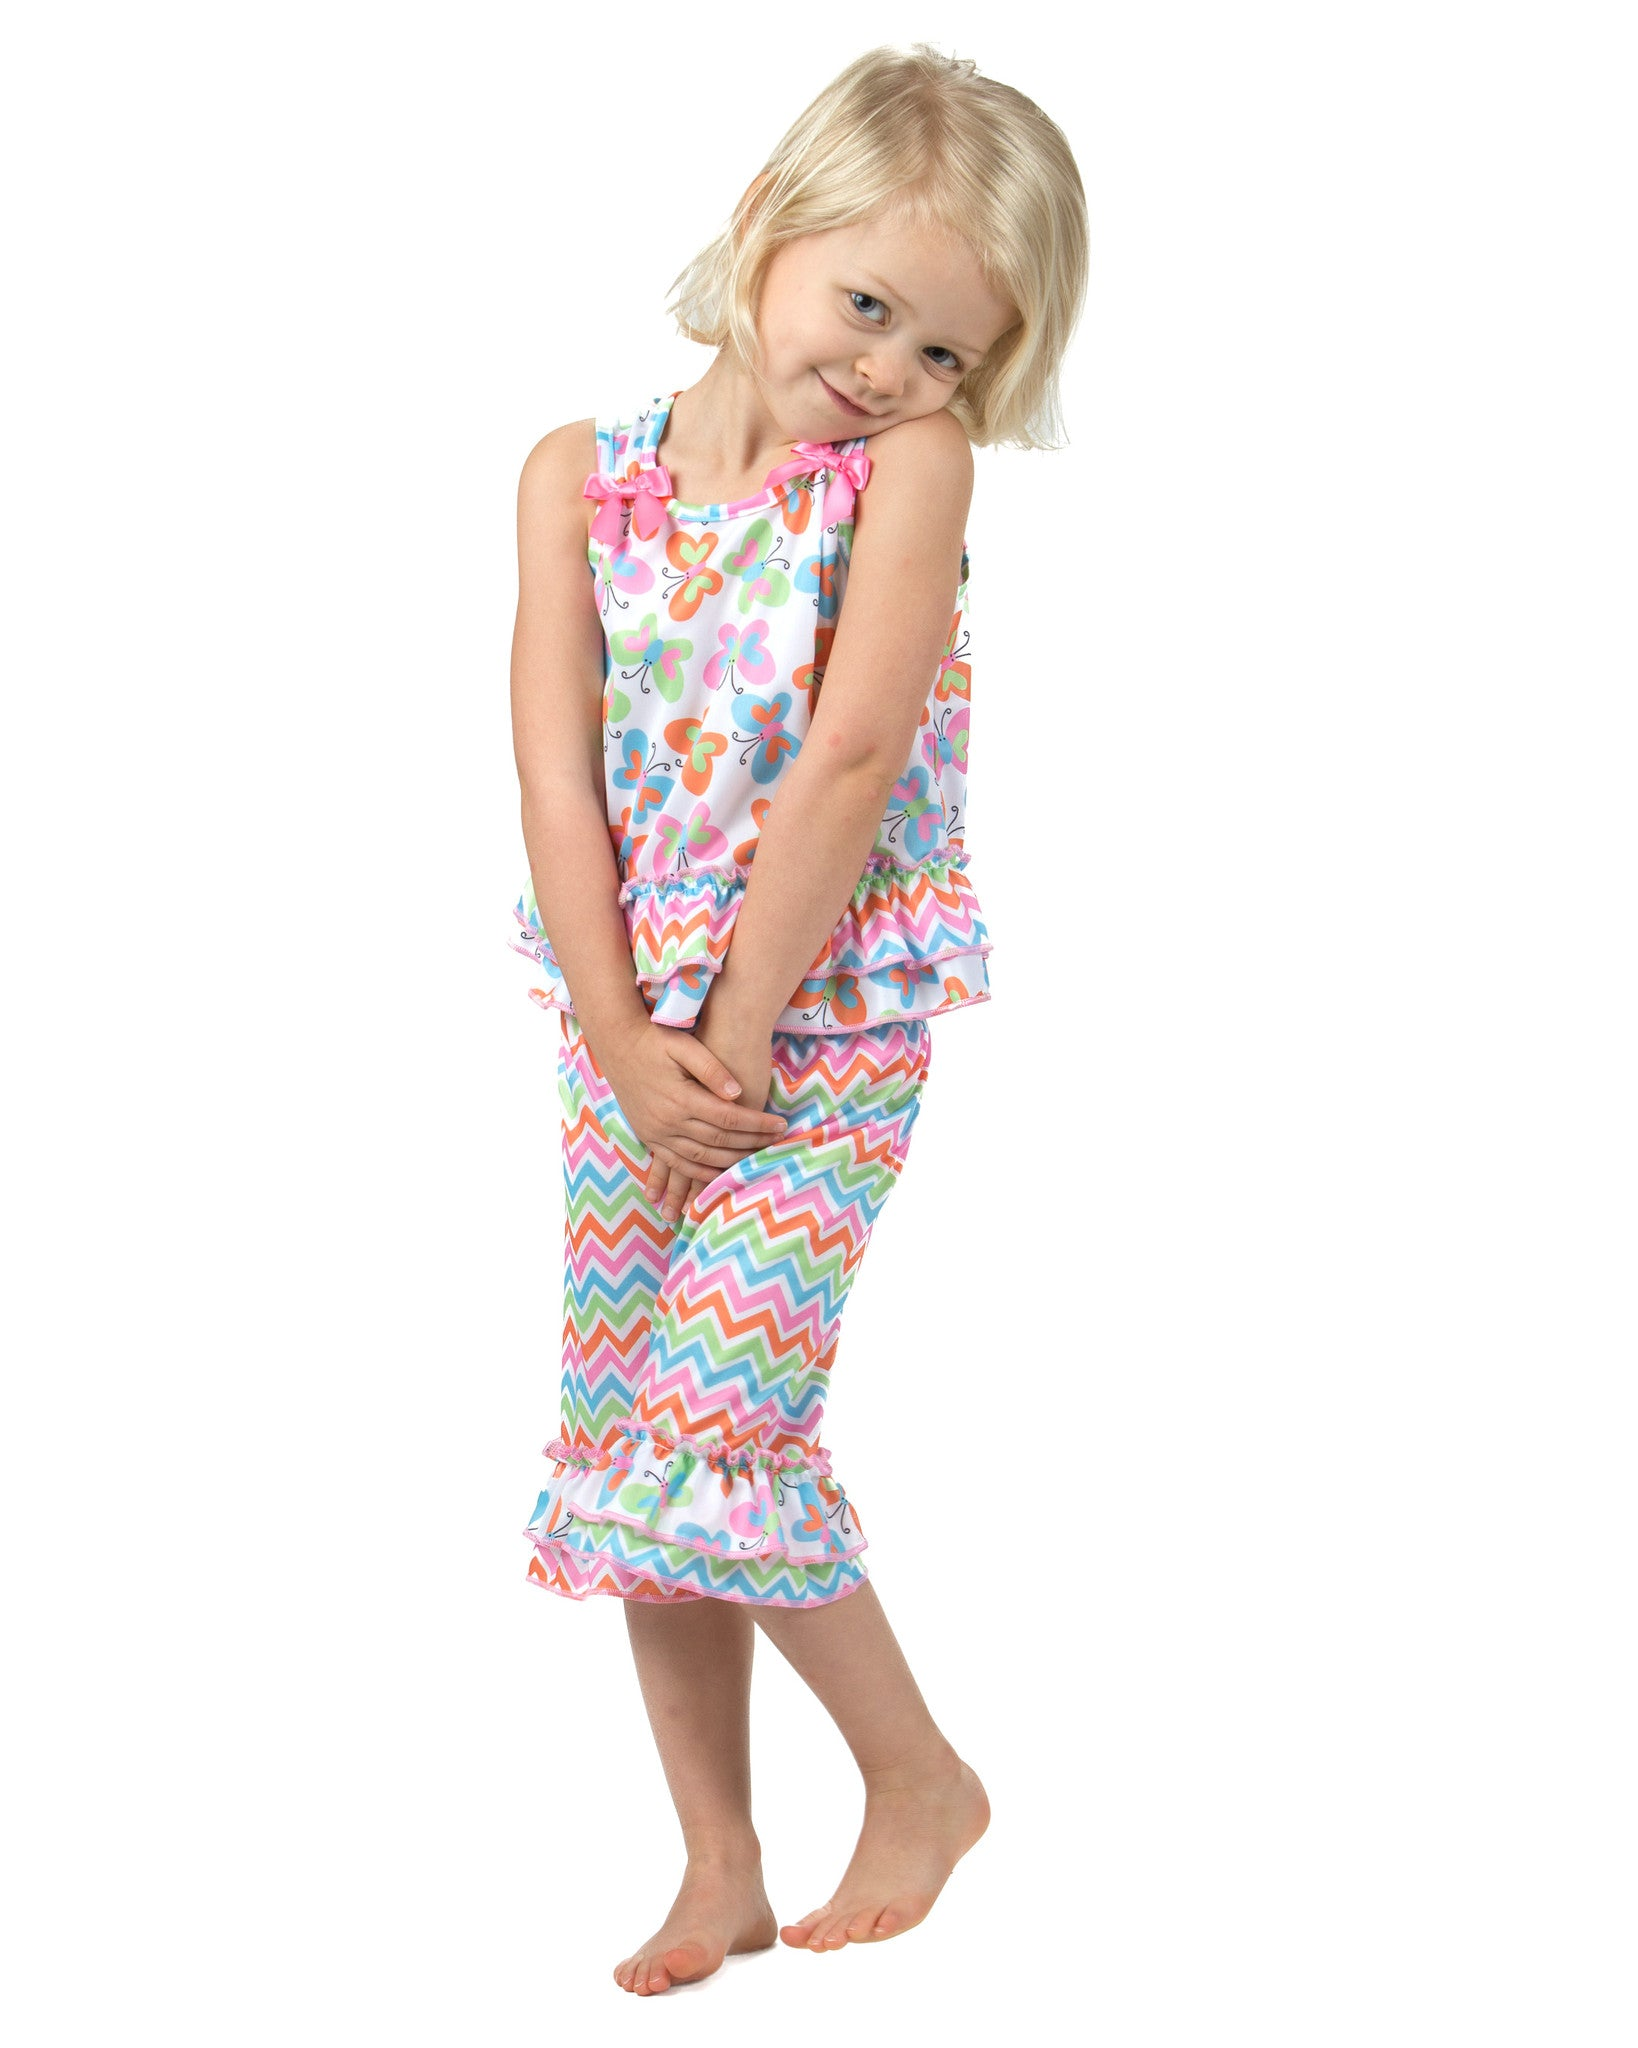 Laura Dare Flutterby Bow Top Pajamas (6m-6x)